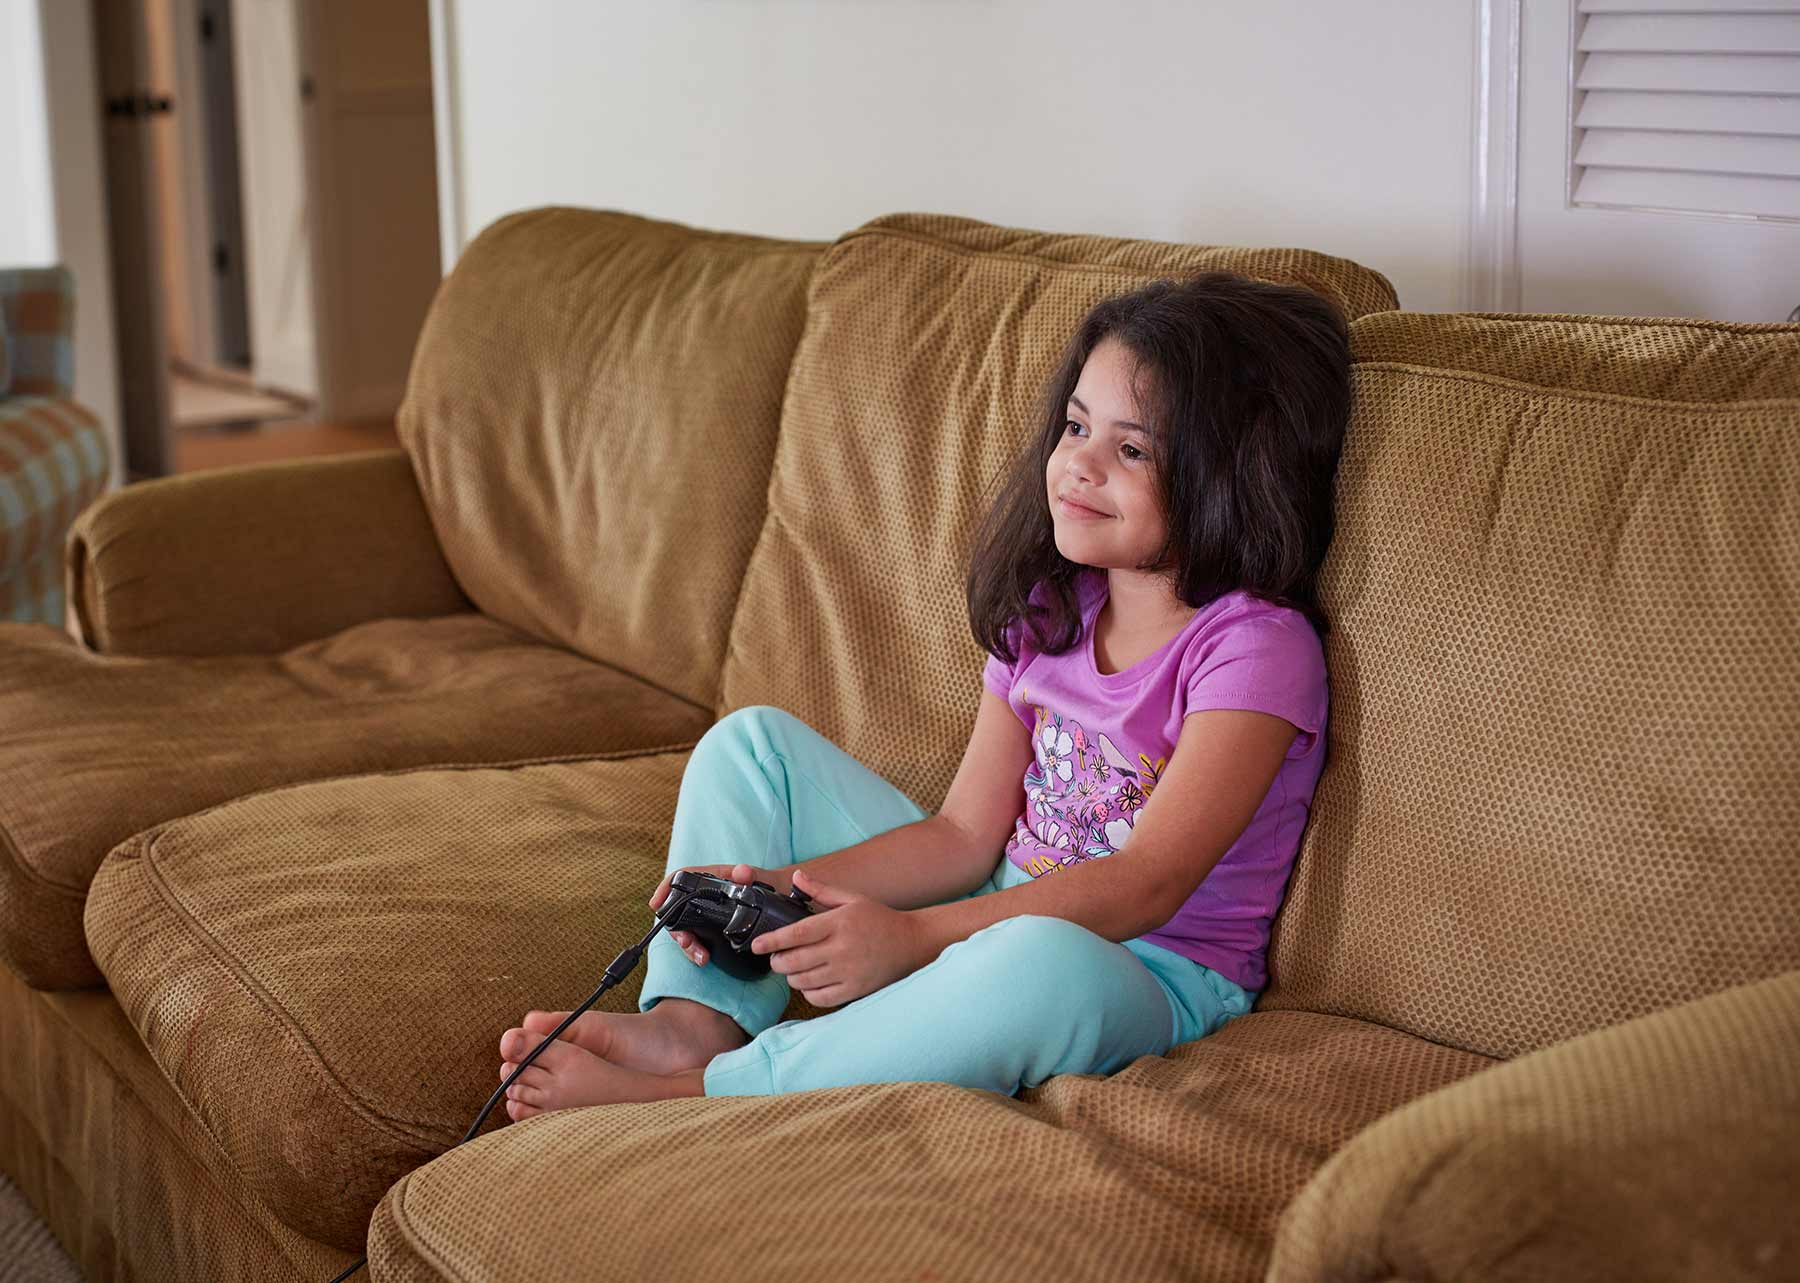 Girl sitting on couch playing video game